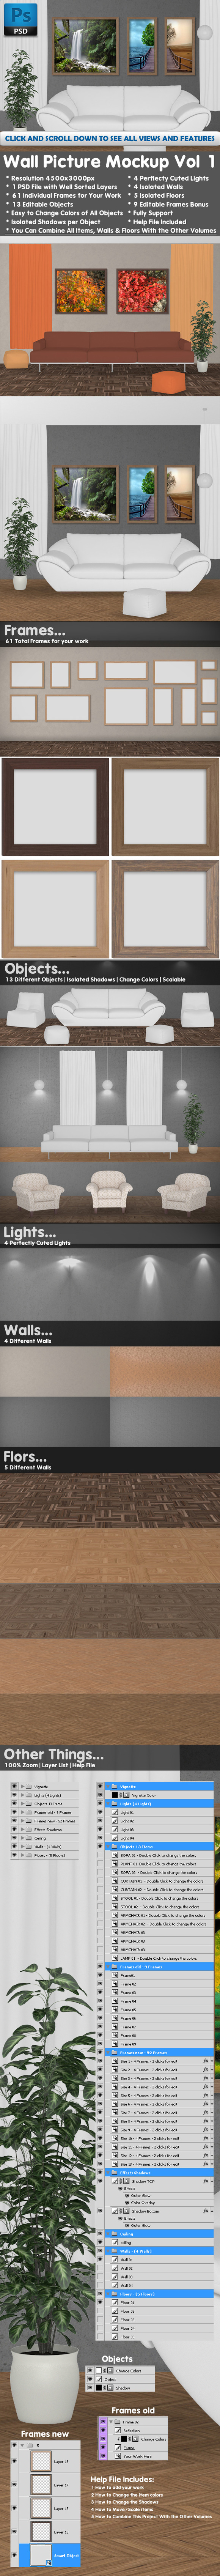 Wall Pictures Kit Mockup Vol 1